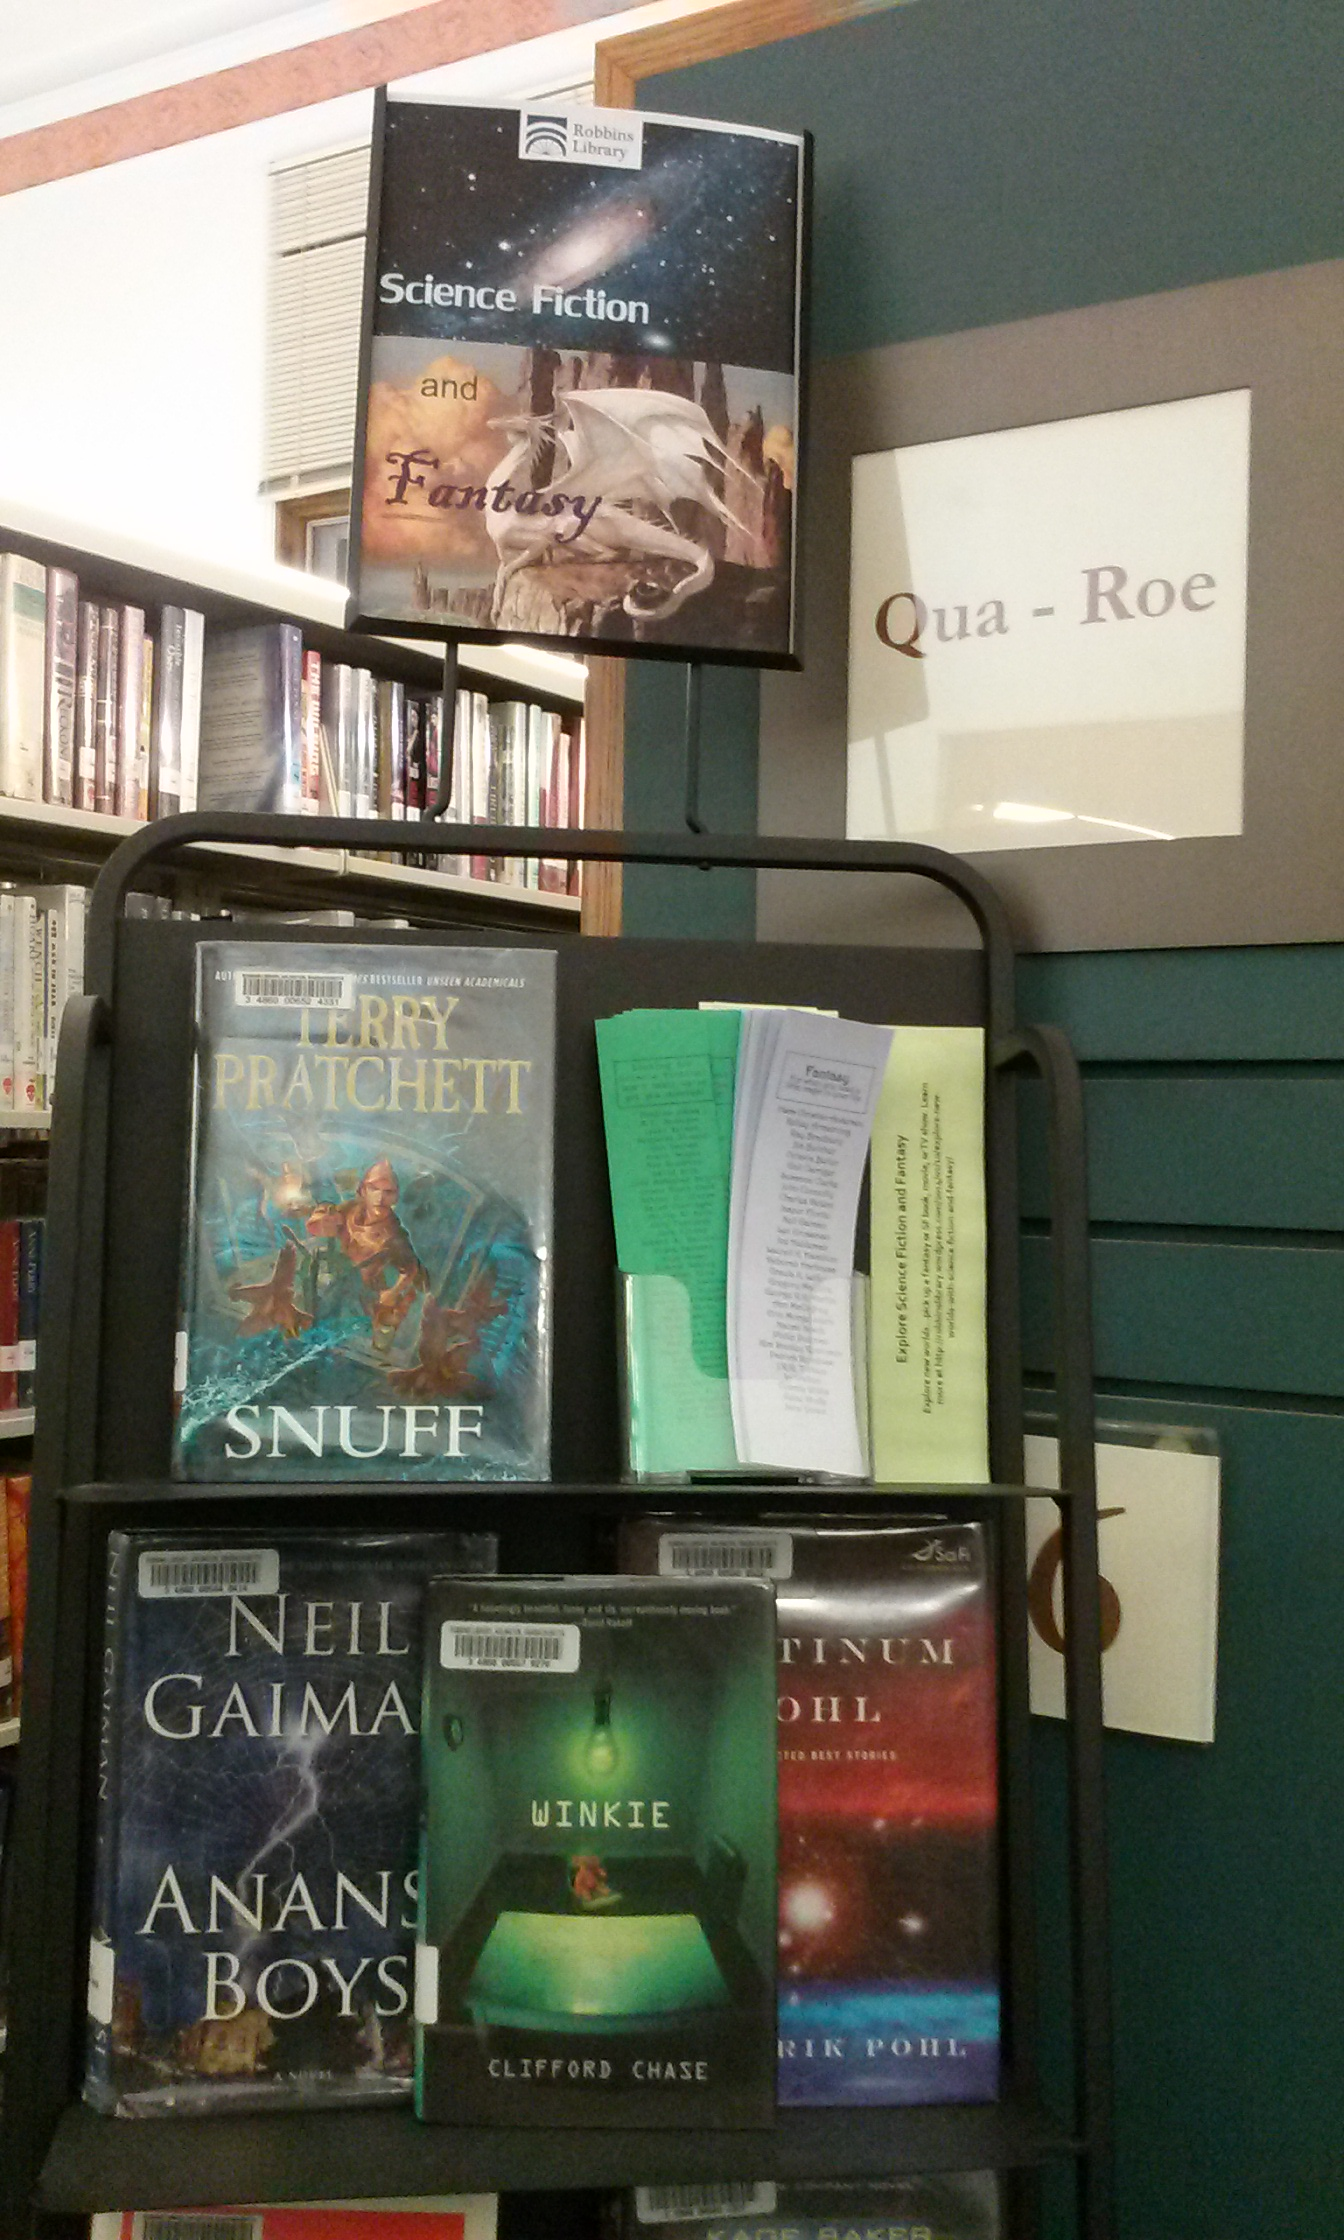 But wait, there's more! | Robbins Library Blog